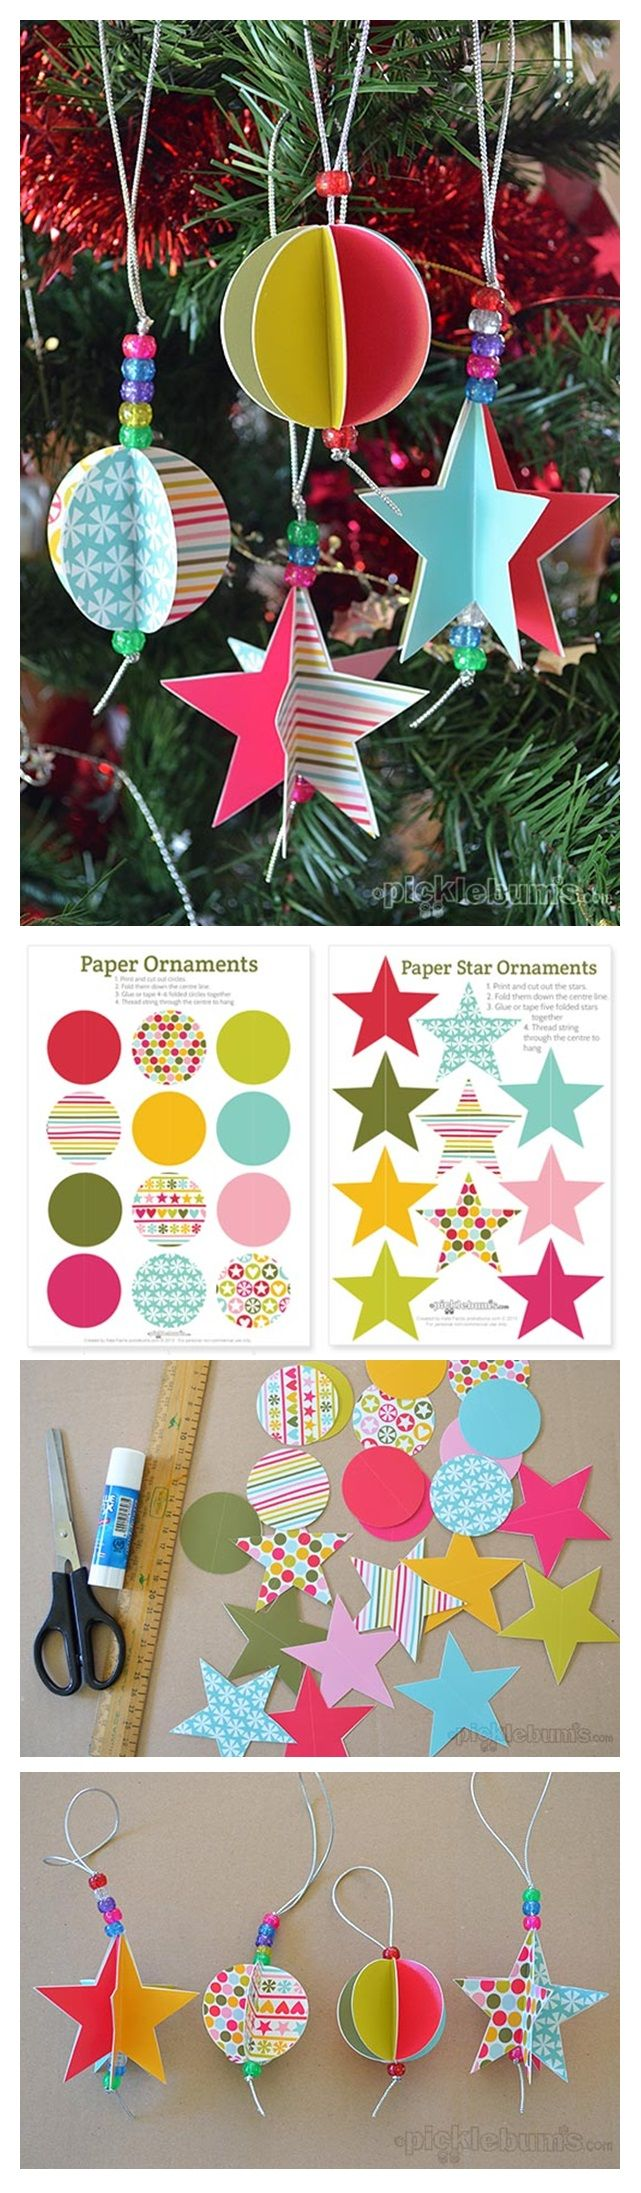 tree decorations with free download